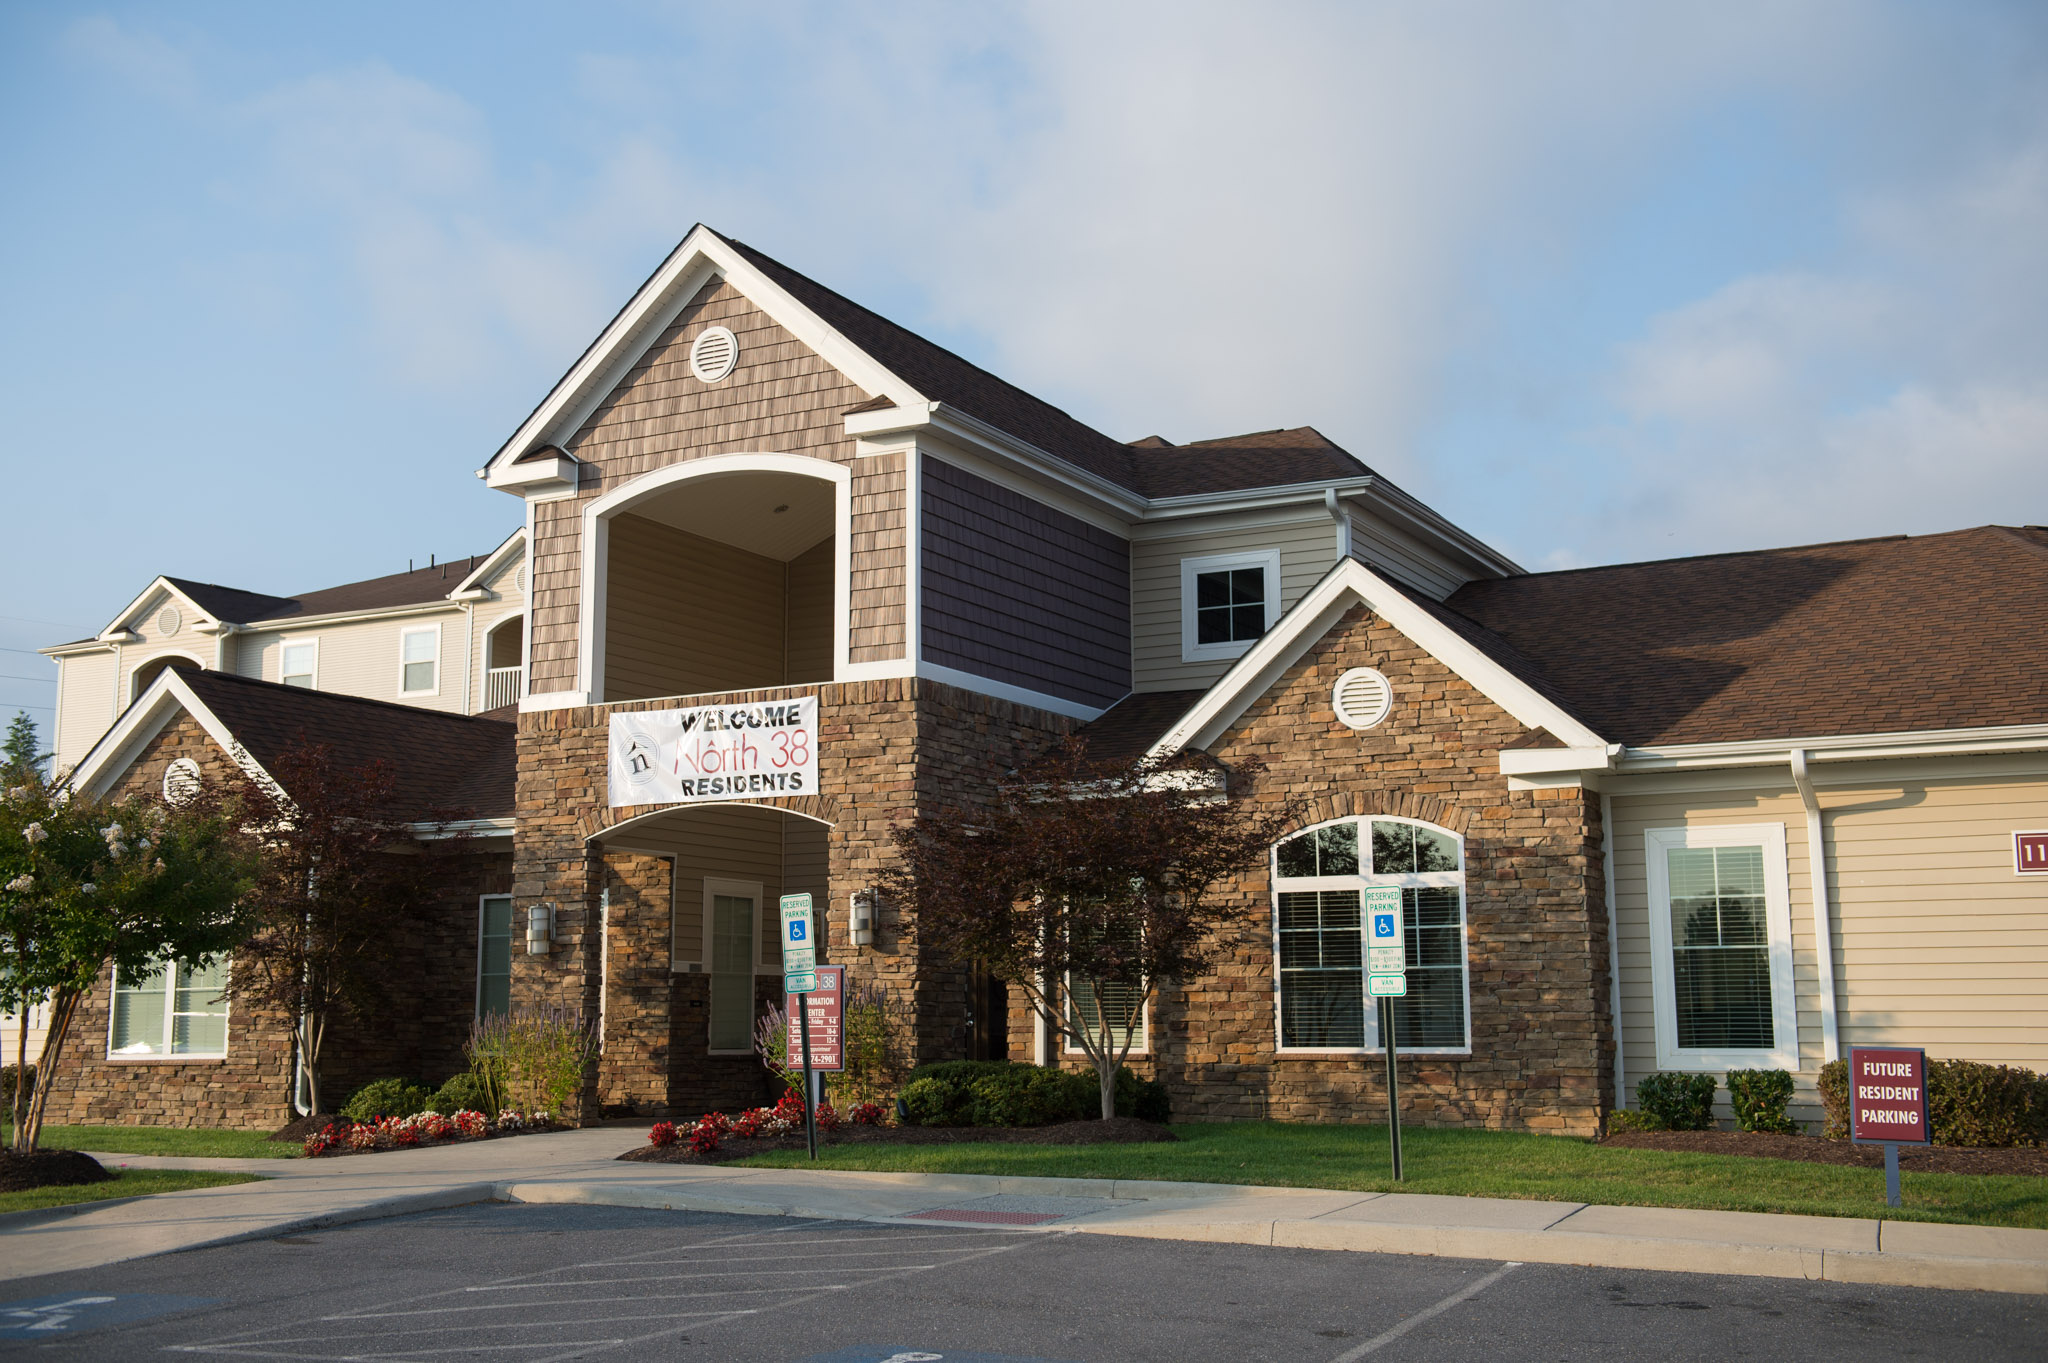 North 38 Exteriors for Web-1020.jpg